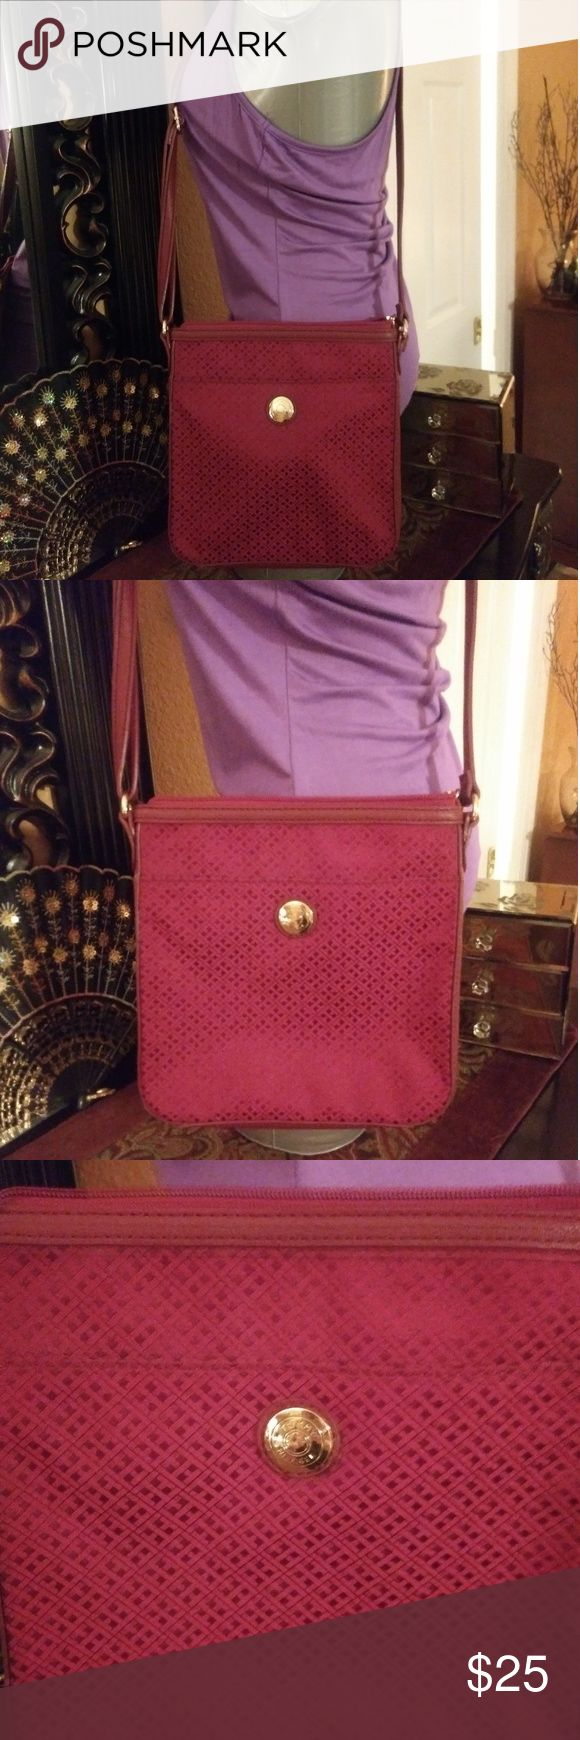 Tommy Hilfiger shoulder Handbag Tommy Hilfiger Shoulder Handbag burgundy in color. Medium size new without tags. No rips no stains. Free🎁with purchase. Smoke free home. Thanks for looking have a nice day Tommy Hilfiger Bags Shoulder Bags